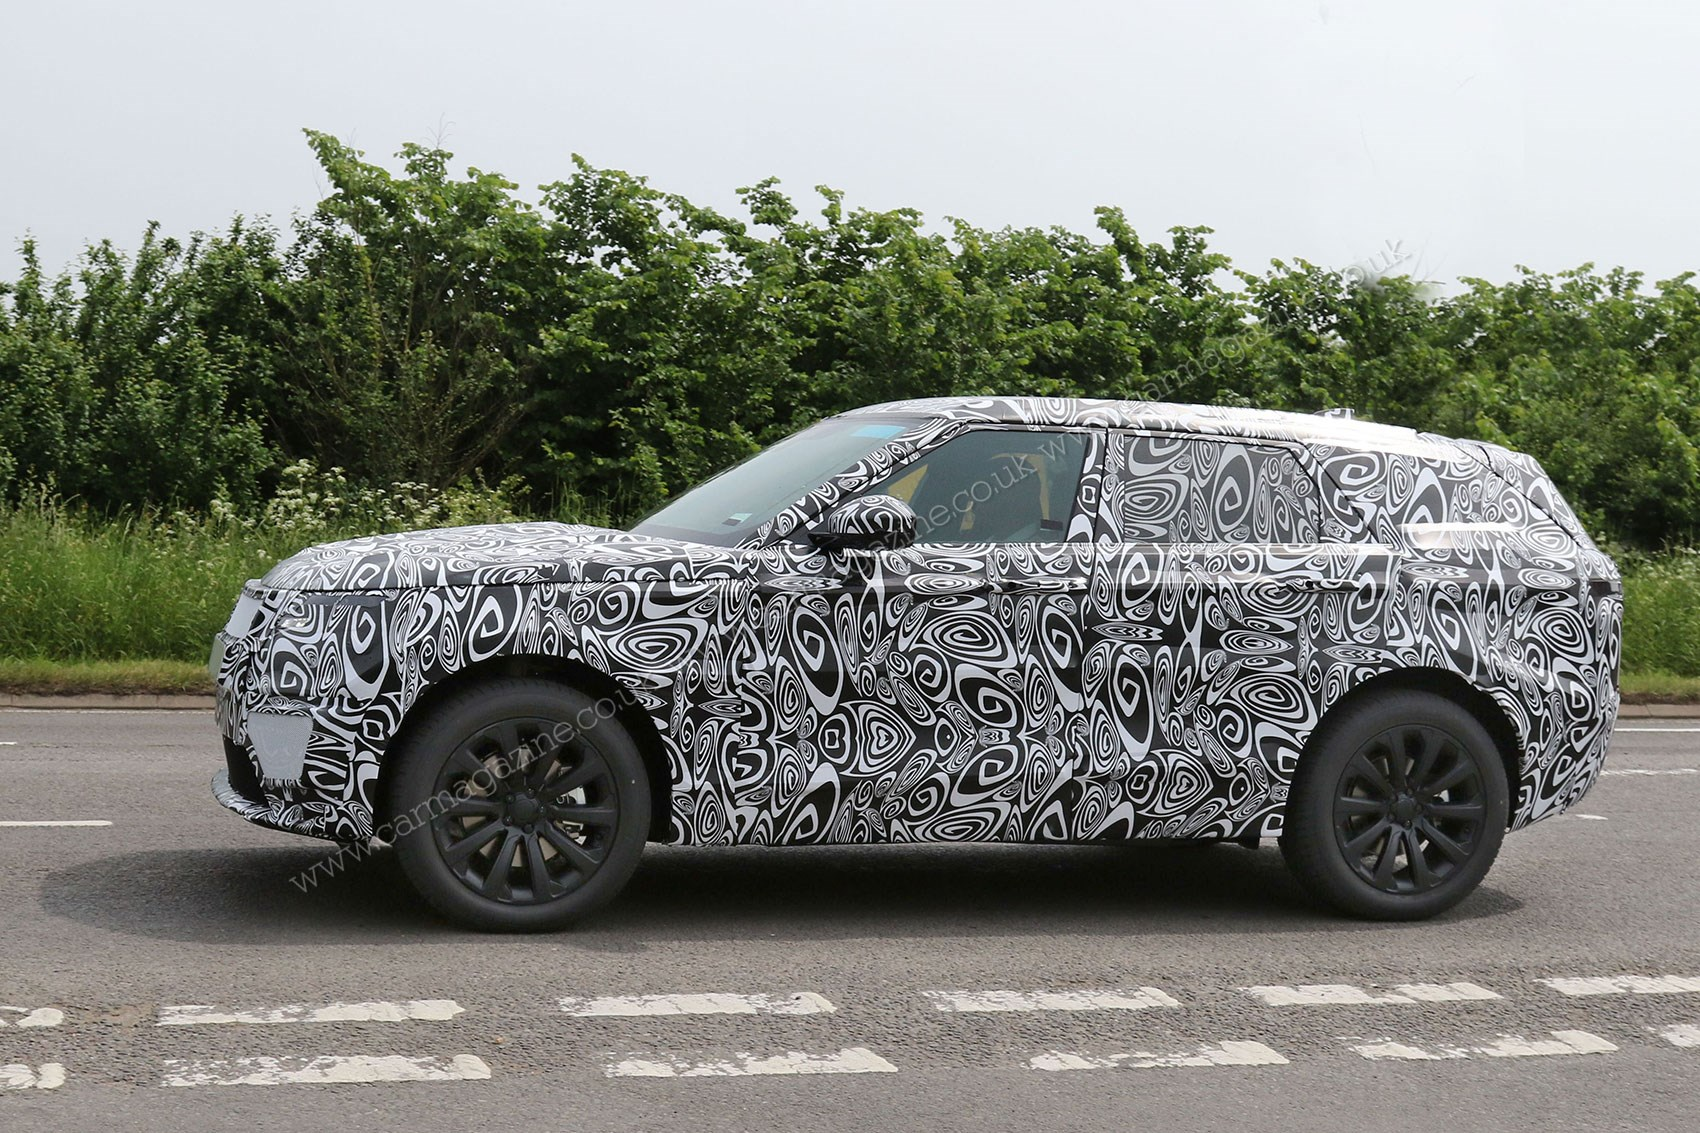 Range Rover Evoque 2018 Interior >> Fourth Range Rover model scooped: latest news on Land Rover's X6 rival, dubbed Velar by CAR Magazine